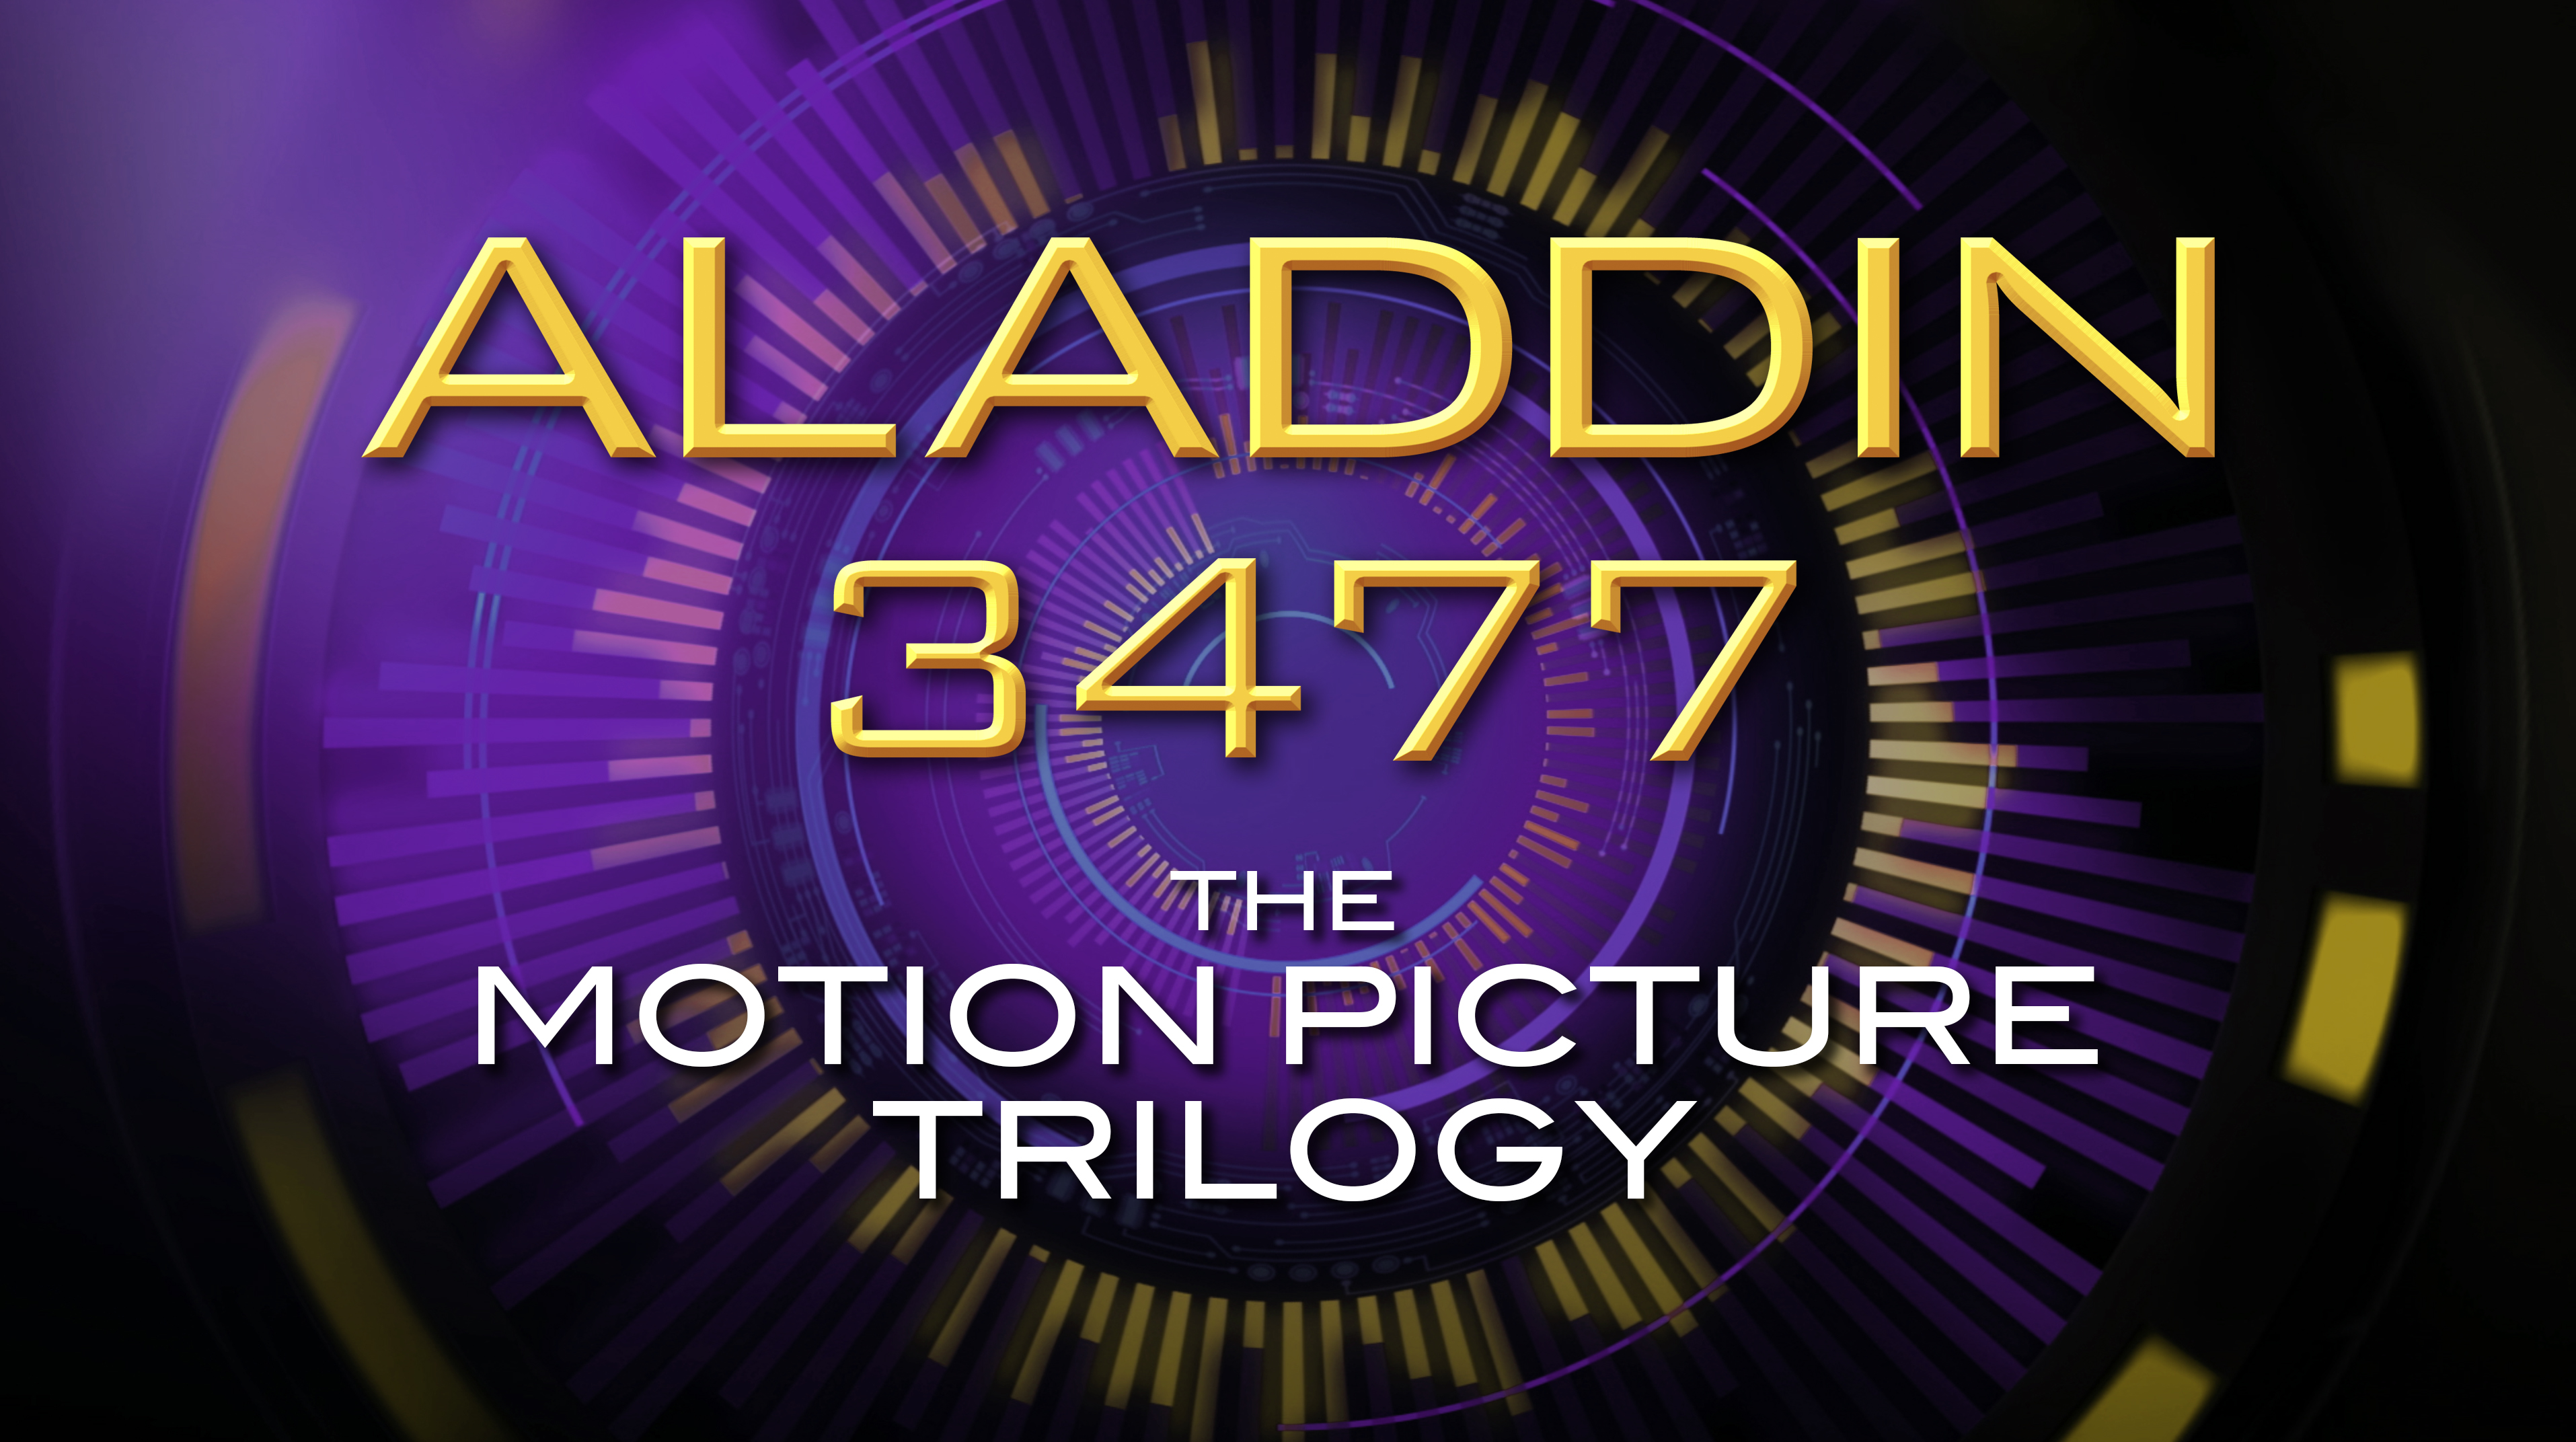 ALADDIN 3477: The Motion Picture Trilogy